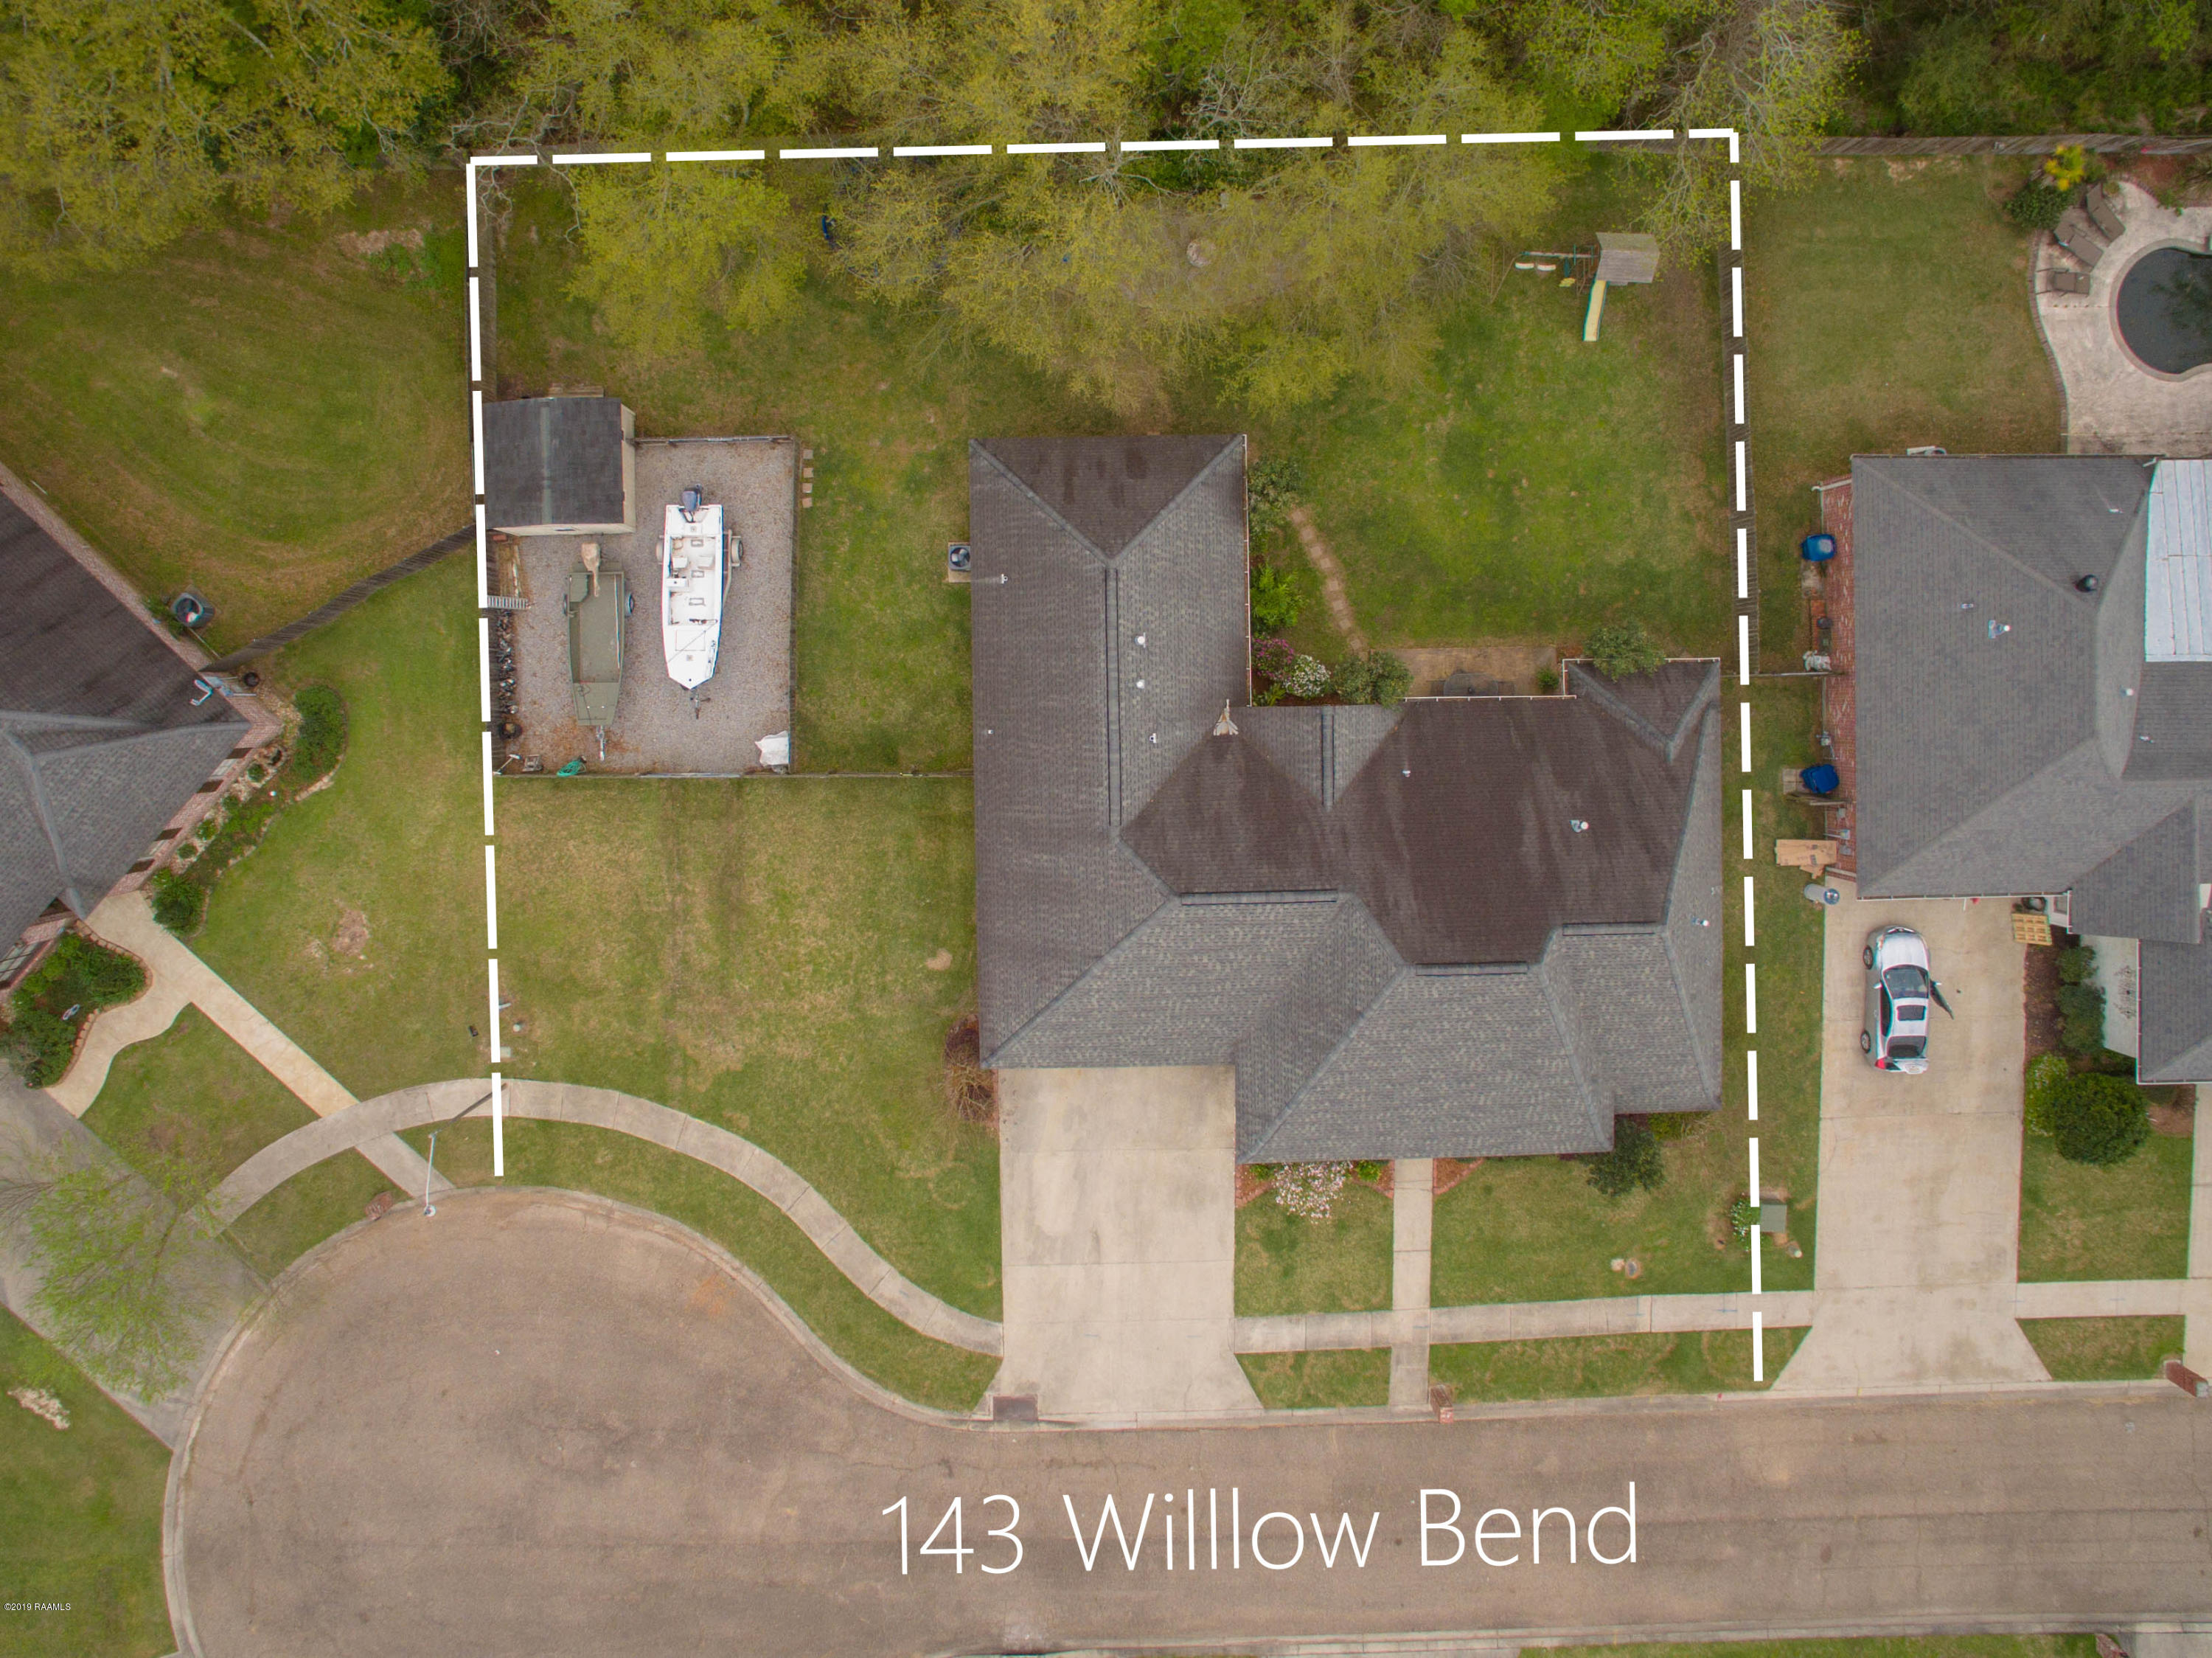 143 Willow Bend, Youngsville, LA 70592 Photo #3